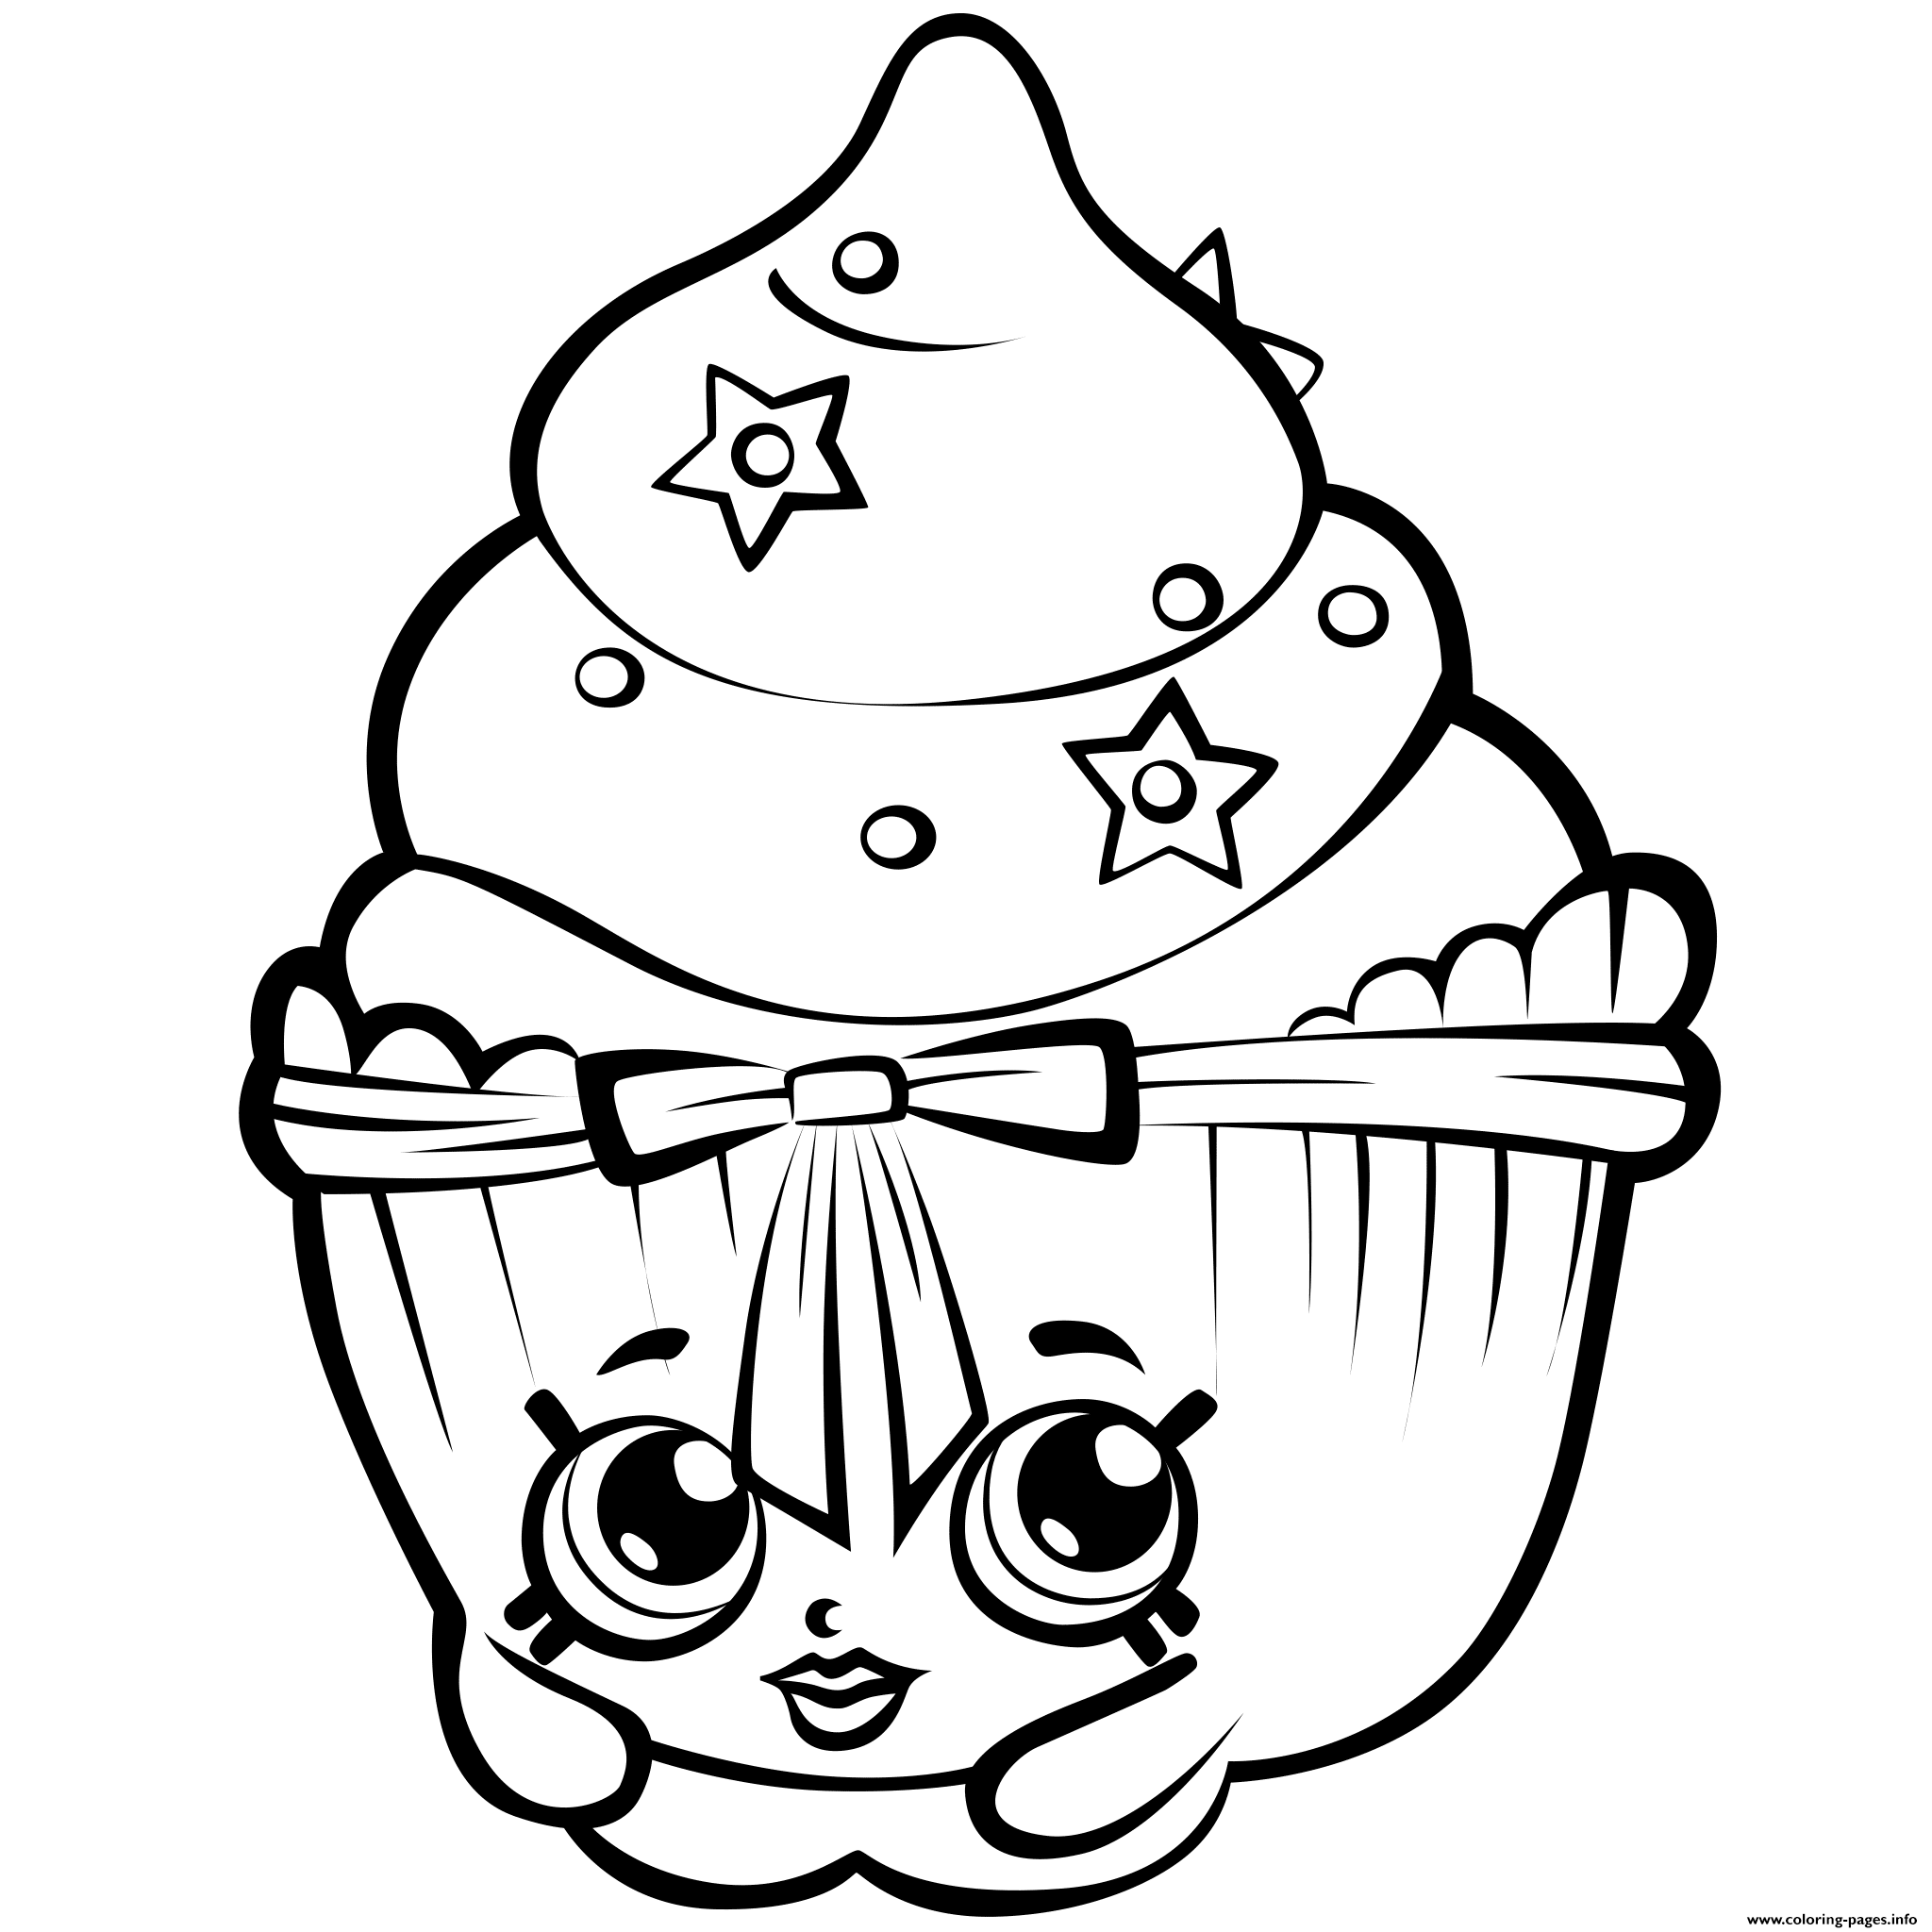 Shopkins coloring pages season 3 - Print Season 3 Patty Cake Shopkins Season 3 Coloring Pages